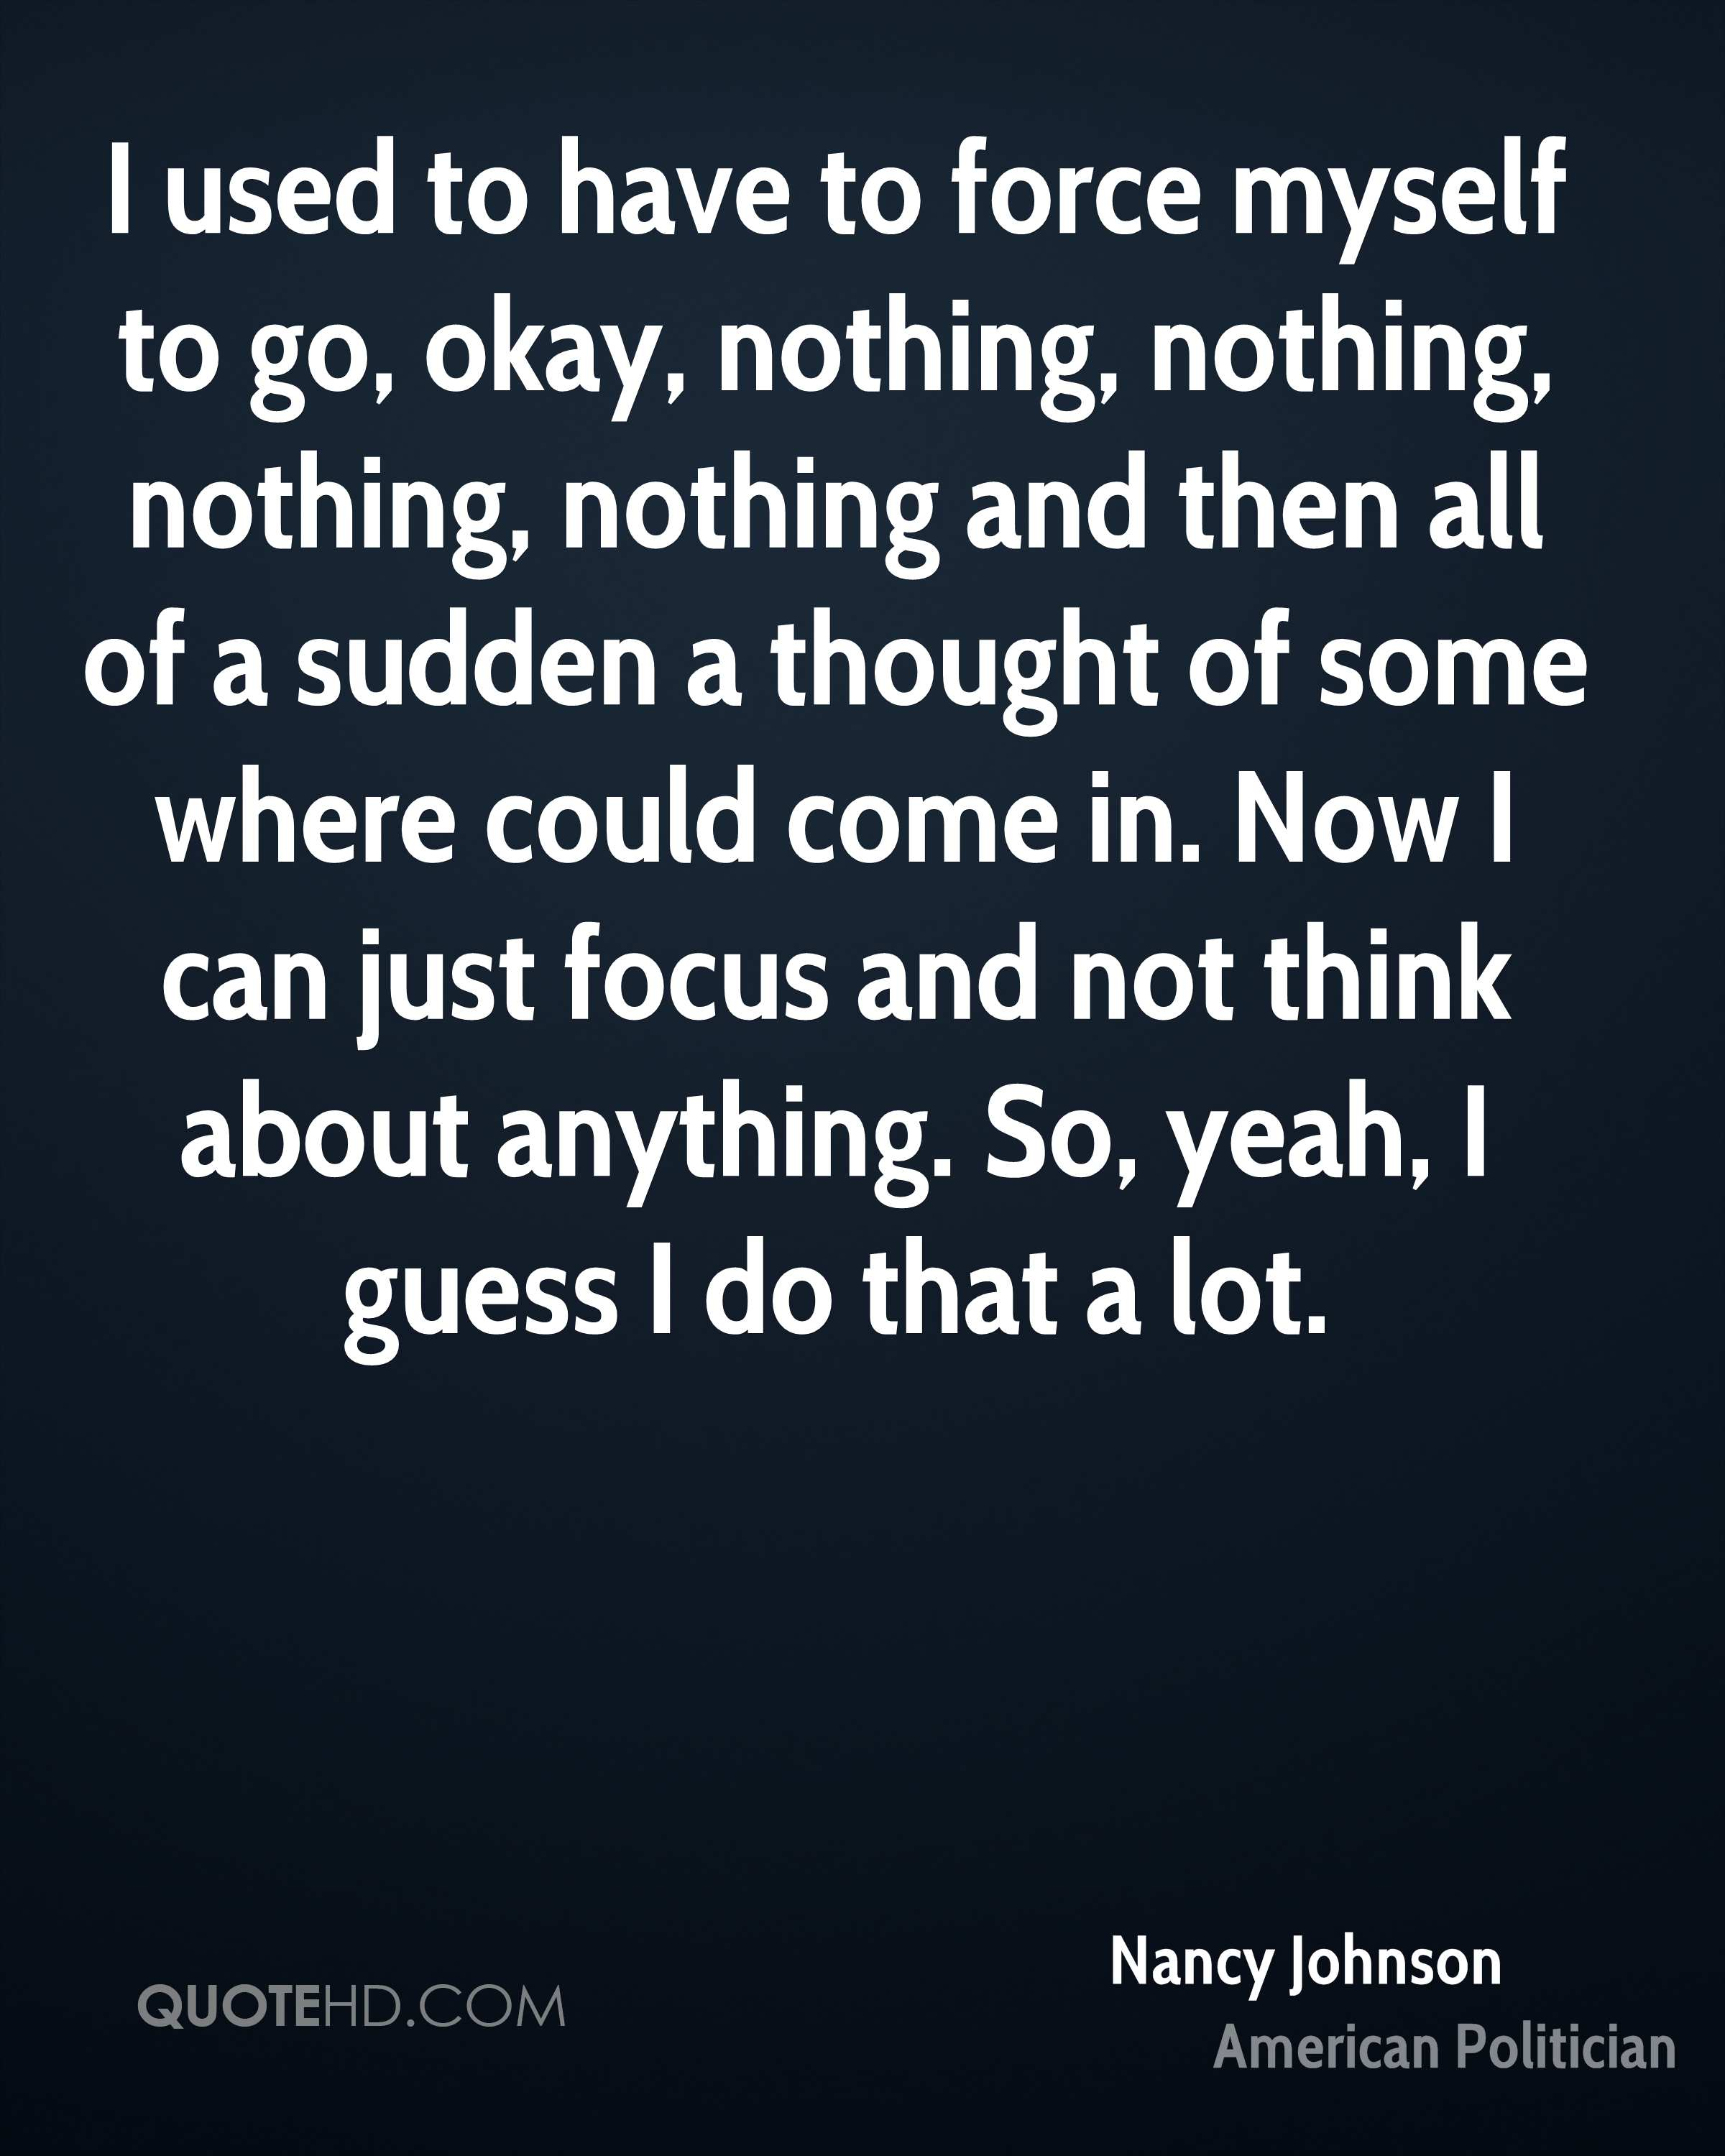 I used to have to force myself to go, okay, nothing, nothing, nothing, nothing and then all of a sudden a thought of some where could come in. Now I can just focus and not think about anything. So, yeah, I guess I do that a lot.